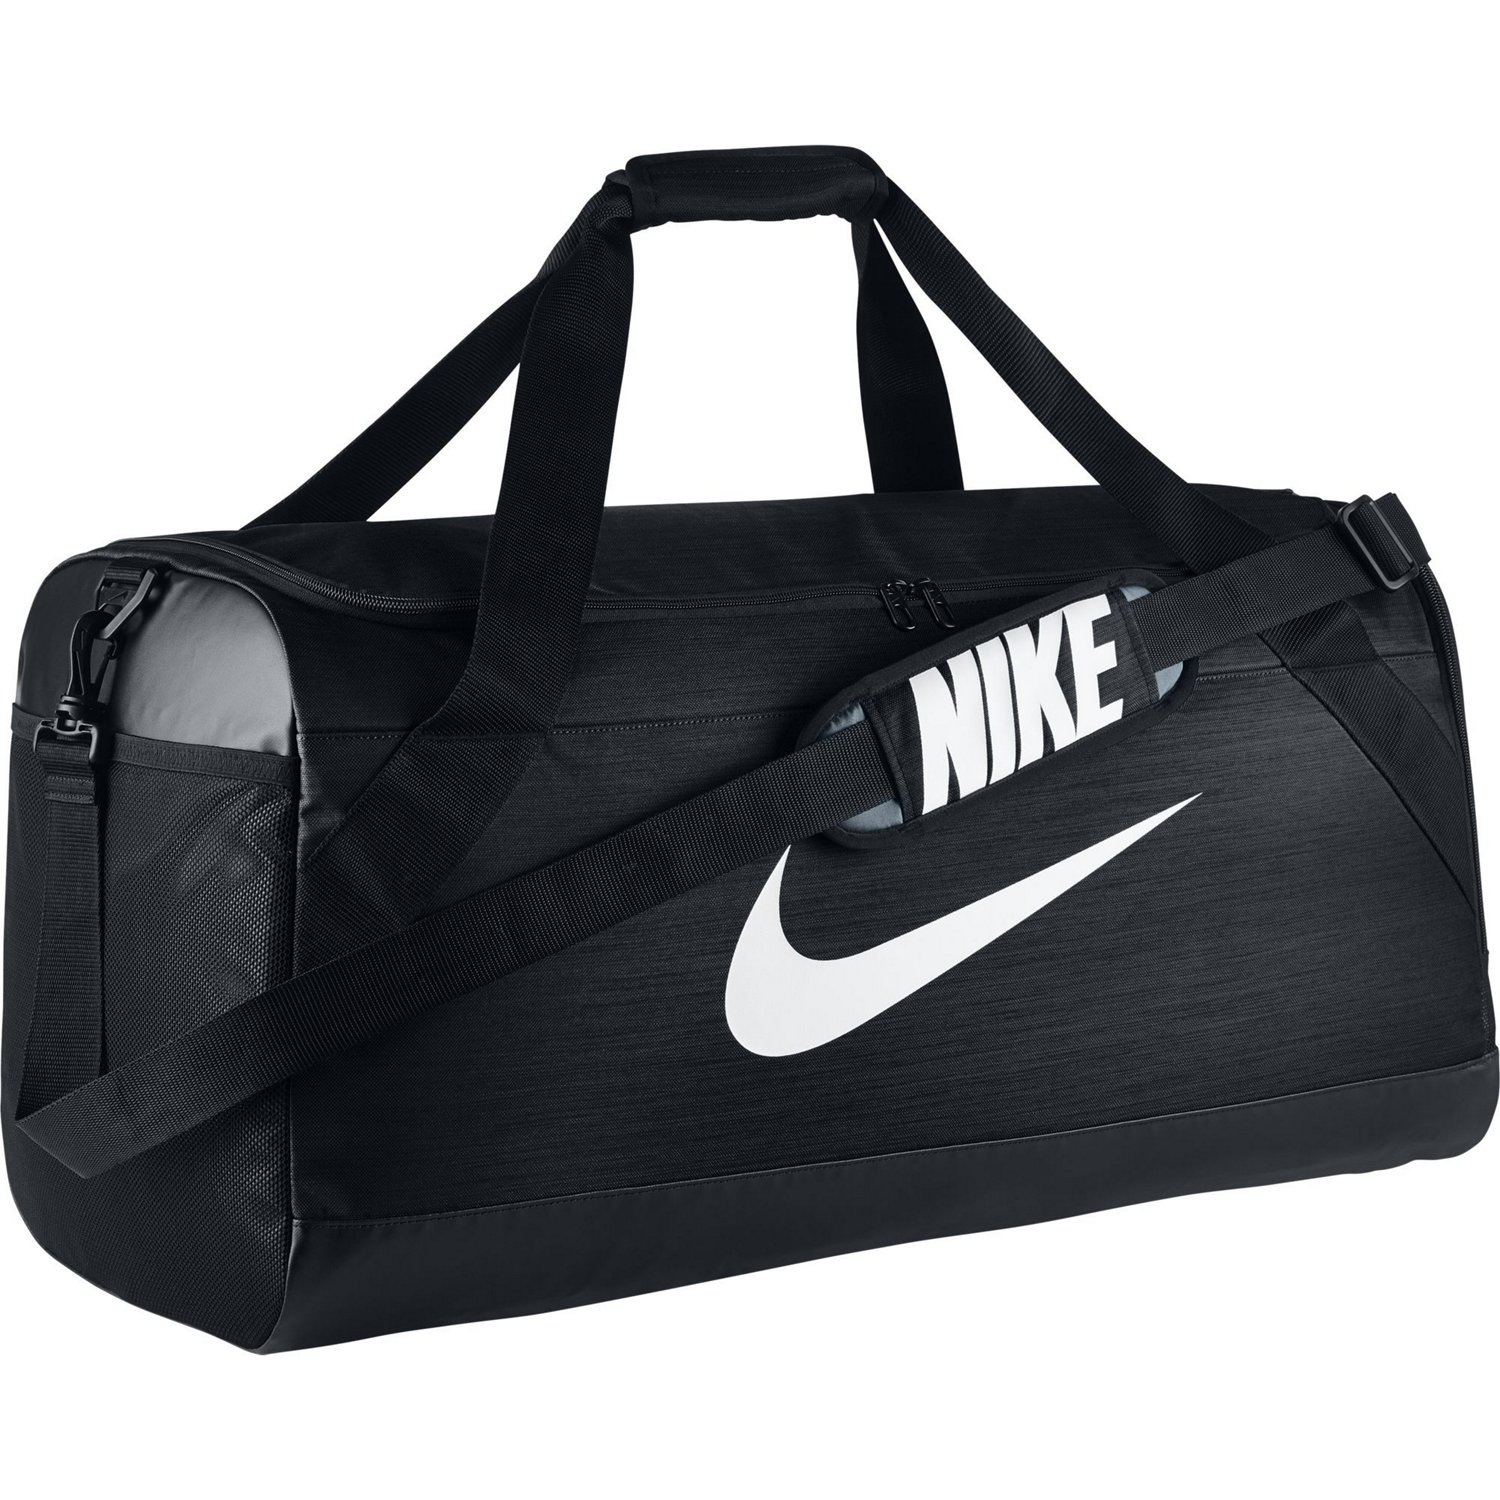 b791650c7da2 Display product reviews for Nike Brasilia Large Duffel Bag